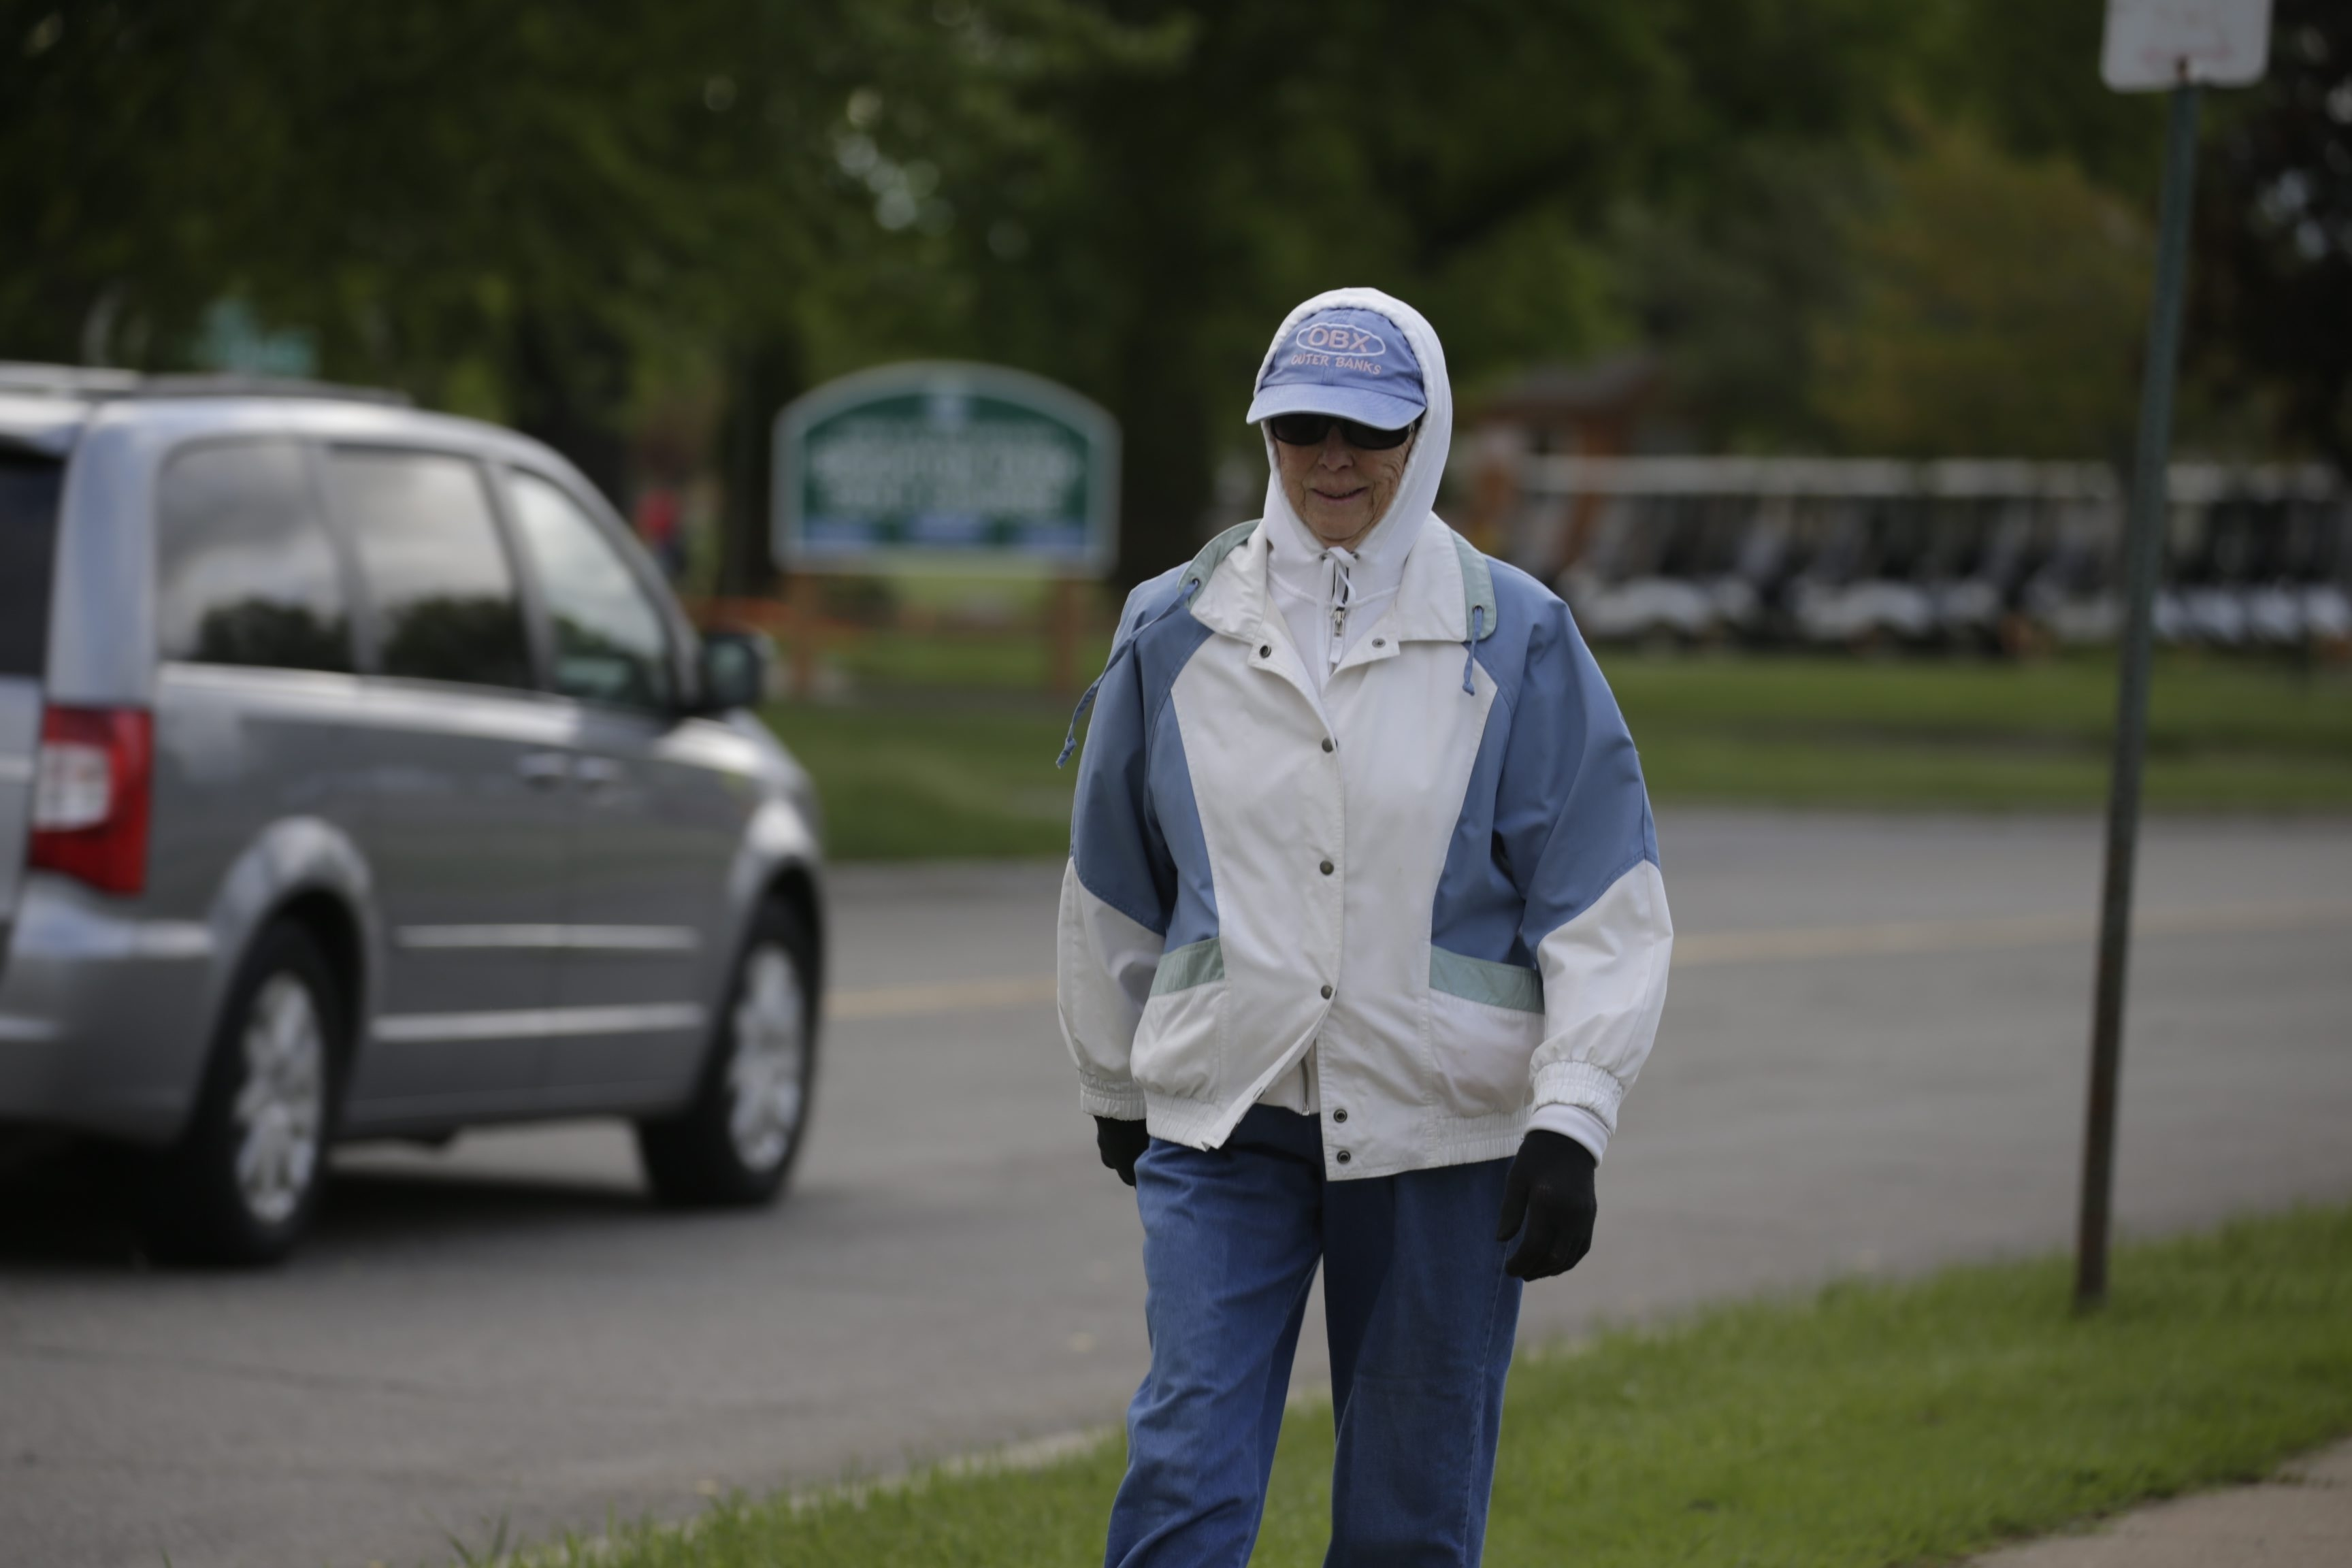 Delores Kellner takes her morning walk on  Brompton Road in Town of Tonawanda, N.Y., on Tuesday, May 19, 2015.   (John Hickey/Buffalo News)